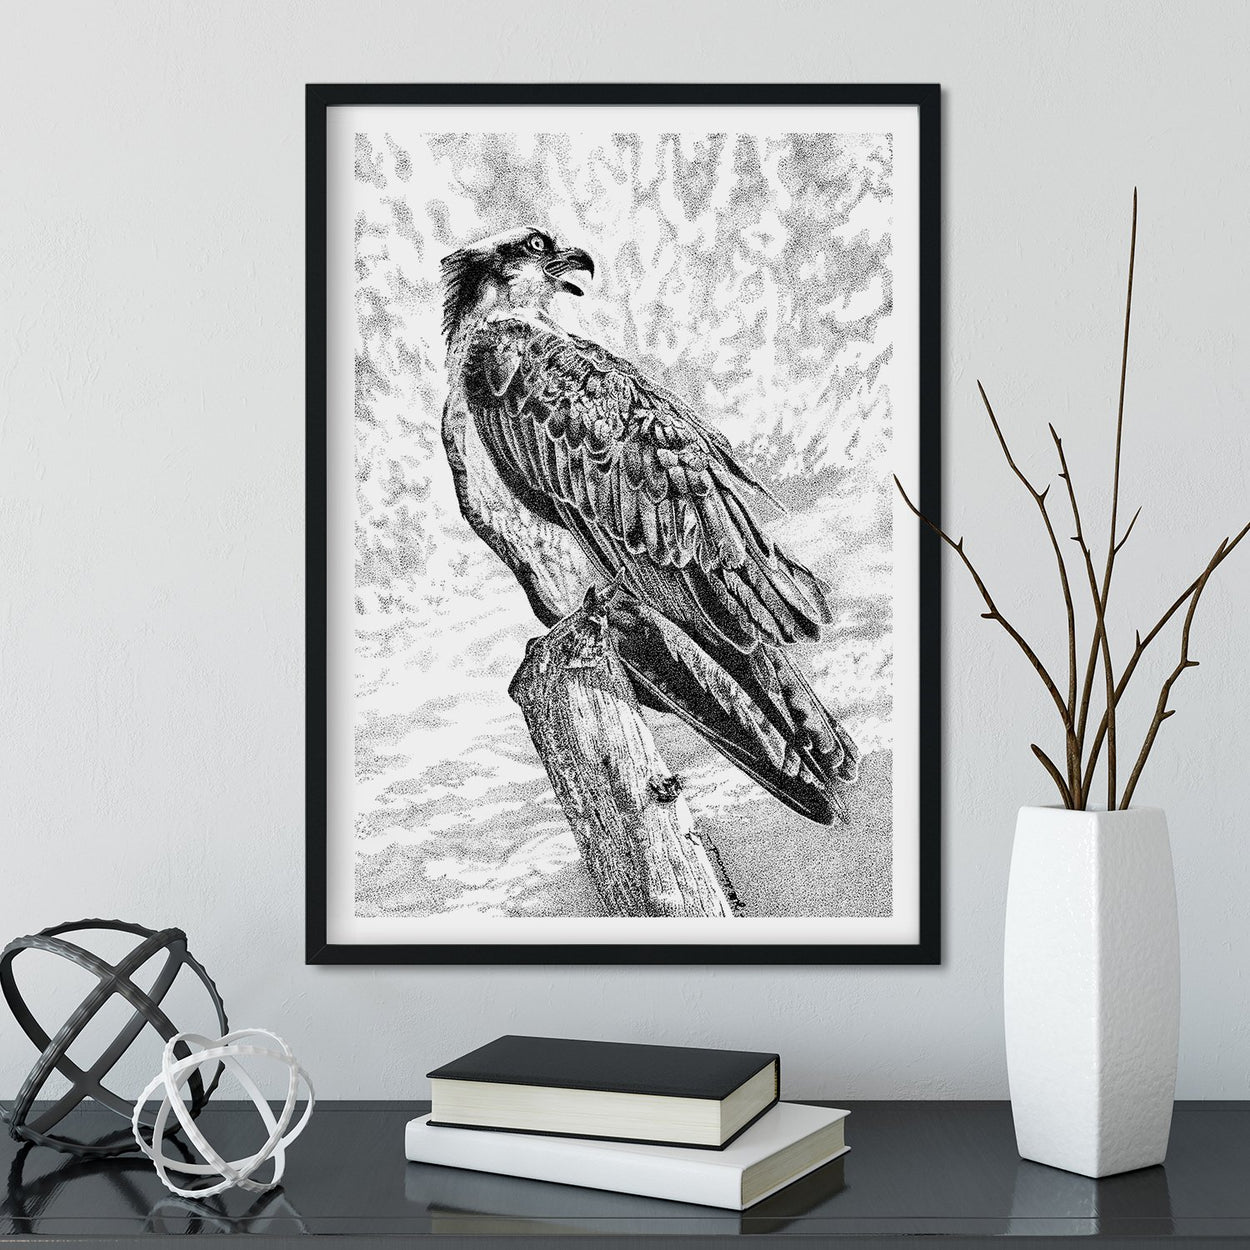 Osprey Wall Art Framed - The Thriving Wild